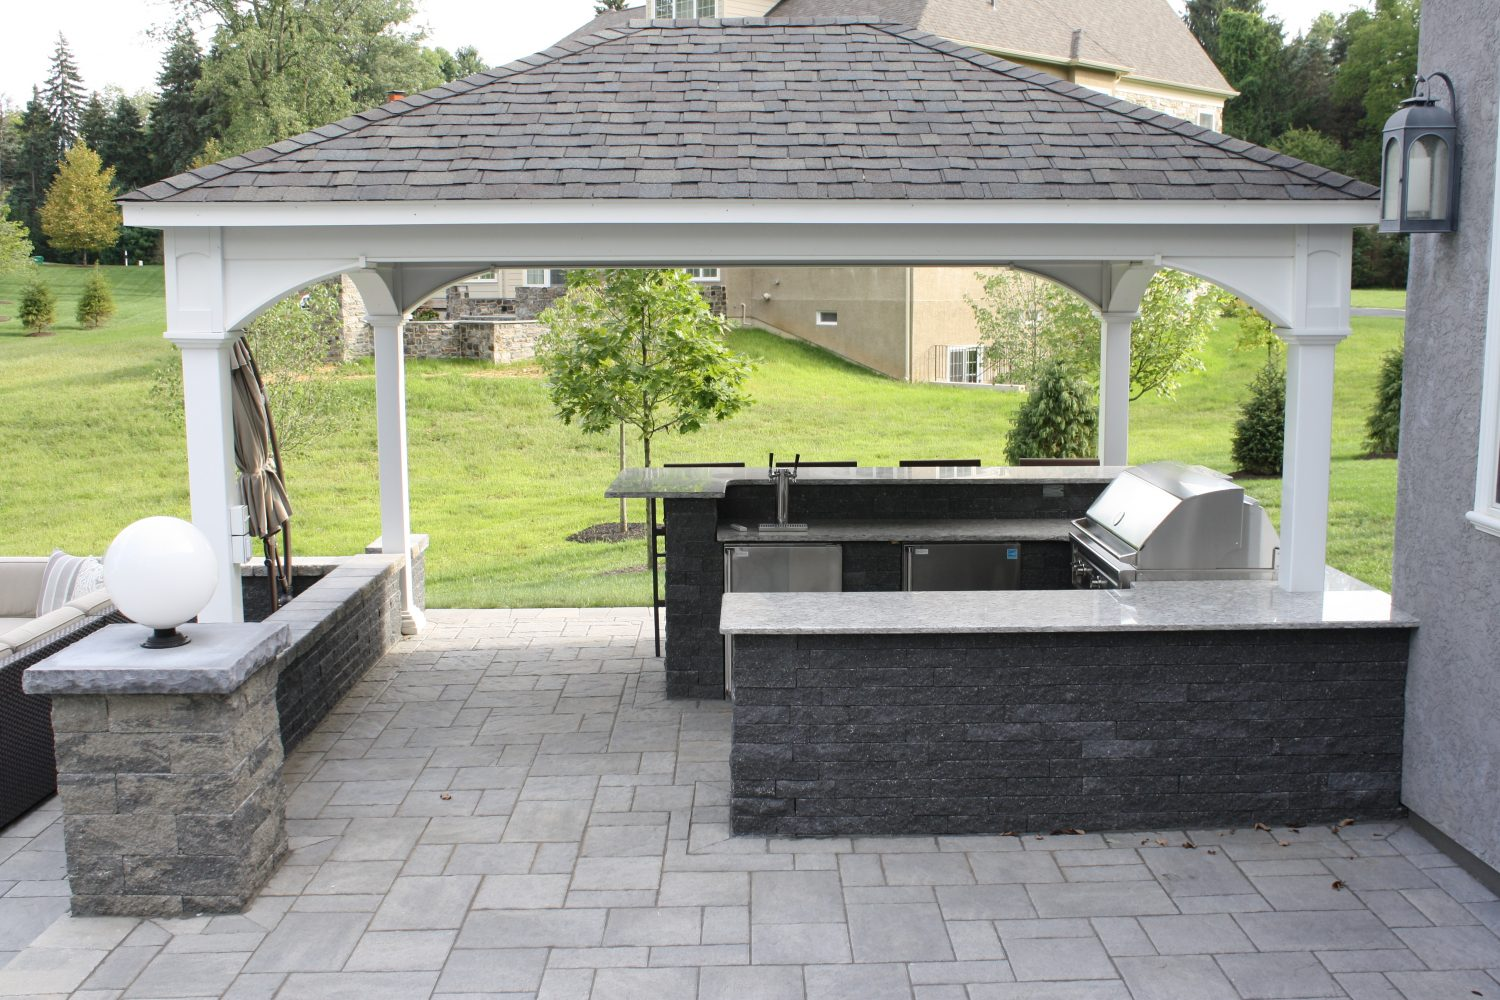 Outdoor structures pavilions burkholder landscape for Outdoor kitchen pavilion designs